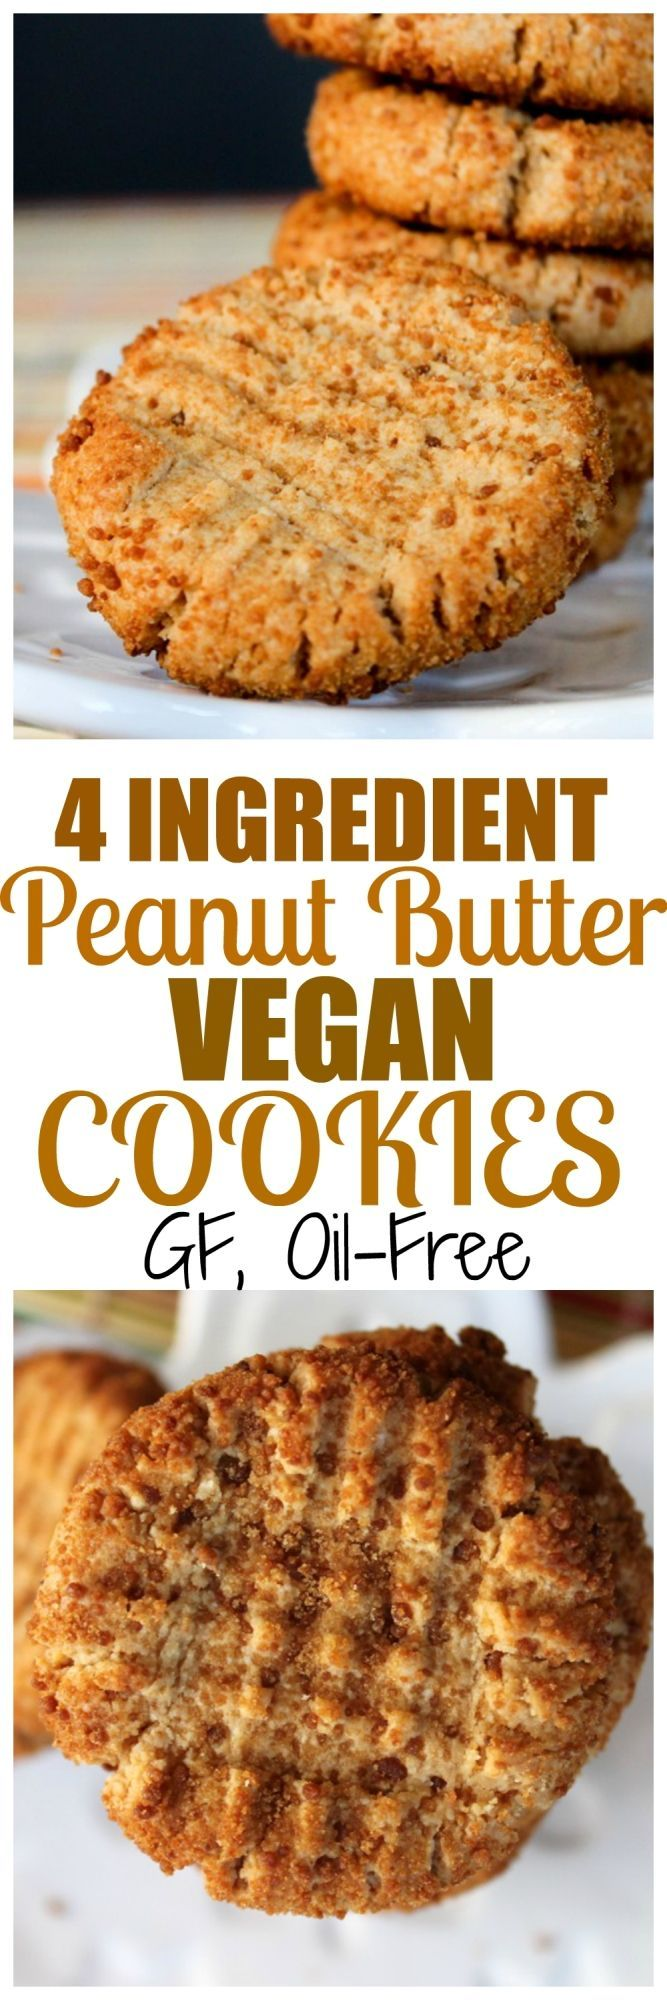 4 INGREDIENT PEANUT BUTTER COOKIES! Vegan, gluten-free and oil-free.